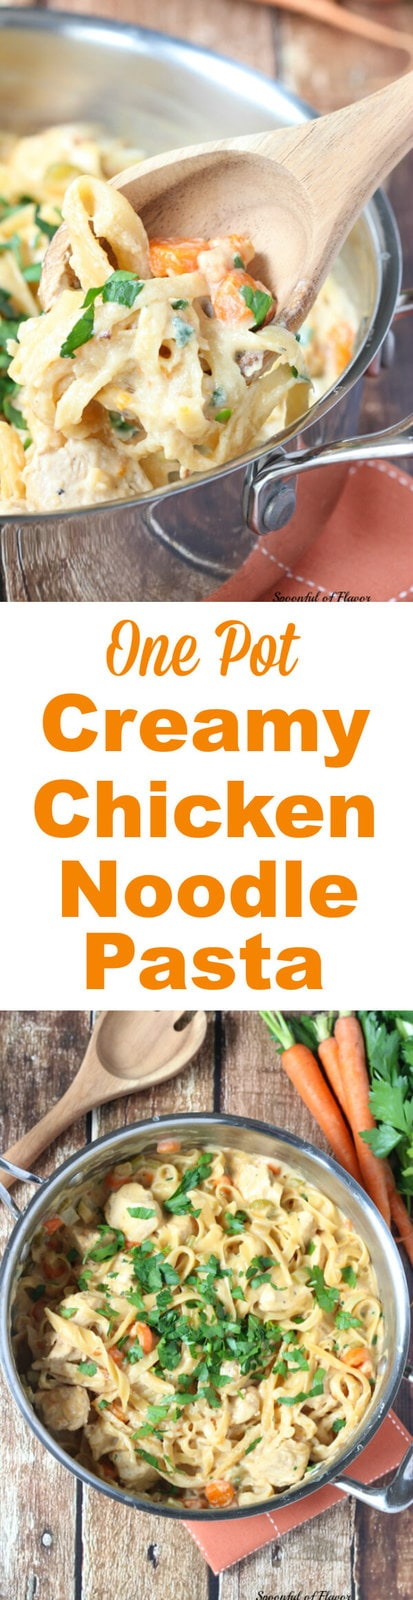 One Pot Creamy Chicken Noodle Pasta is filled with chicken, veggies and creamy sauce! It only uses one pot!